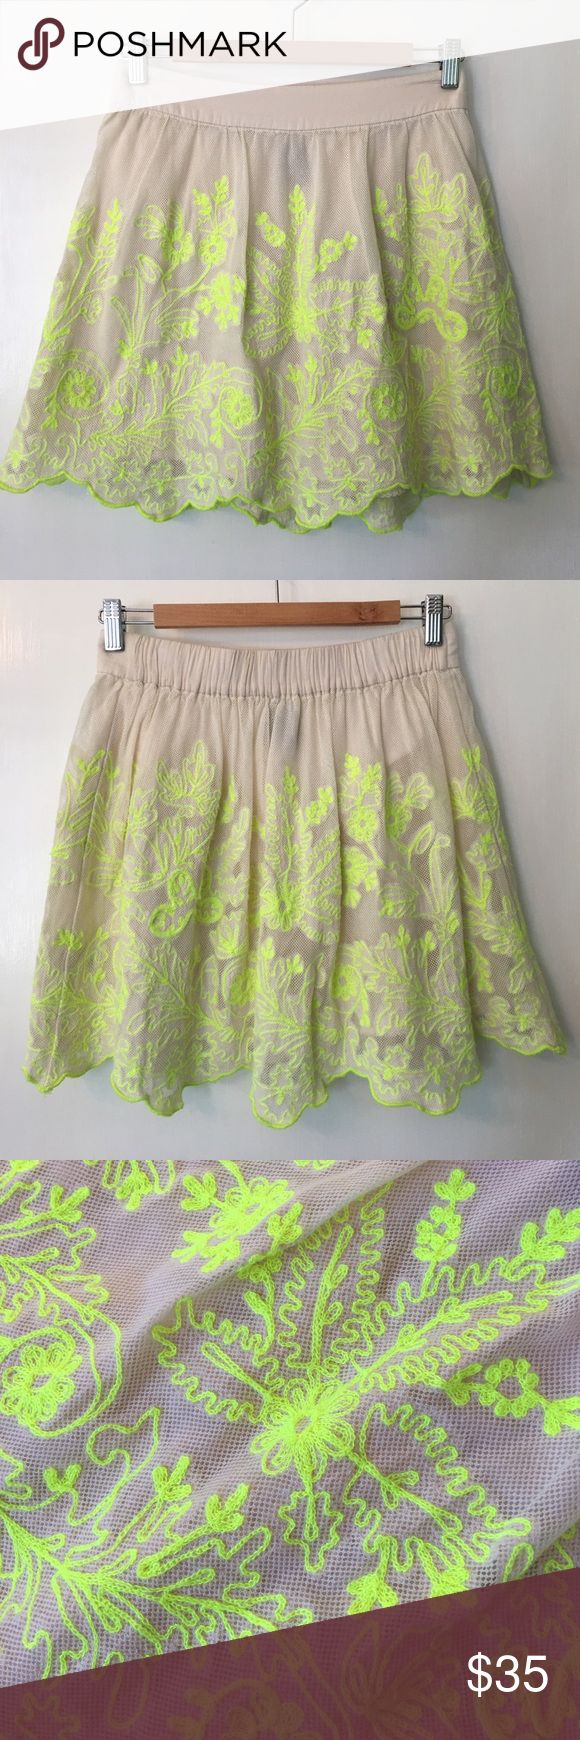 "Neon Yellow & Cream Floral Embroidery Mini Skirt Fun and flirty embroidered mini skirt!  Like New! Size 4- Measurements taken flat- Waist- 14"", Hips- 22"", Length- 17"". Vanessa Virginia Skirts Mini"